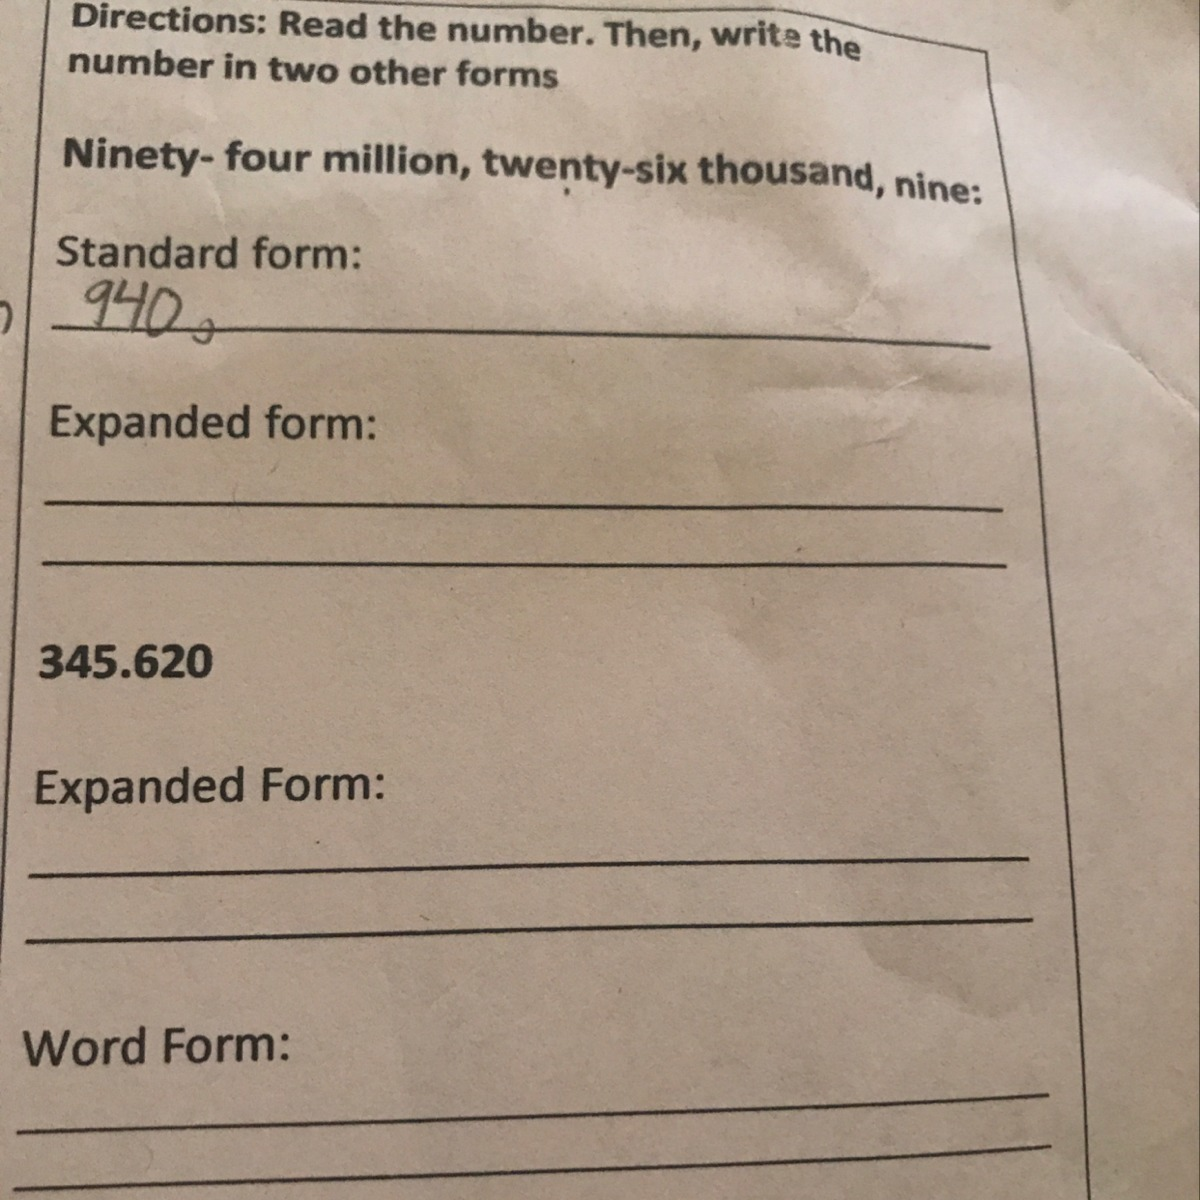 How Do You Write These Numbers In Standard And Expanded Form